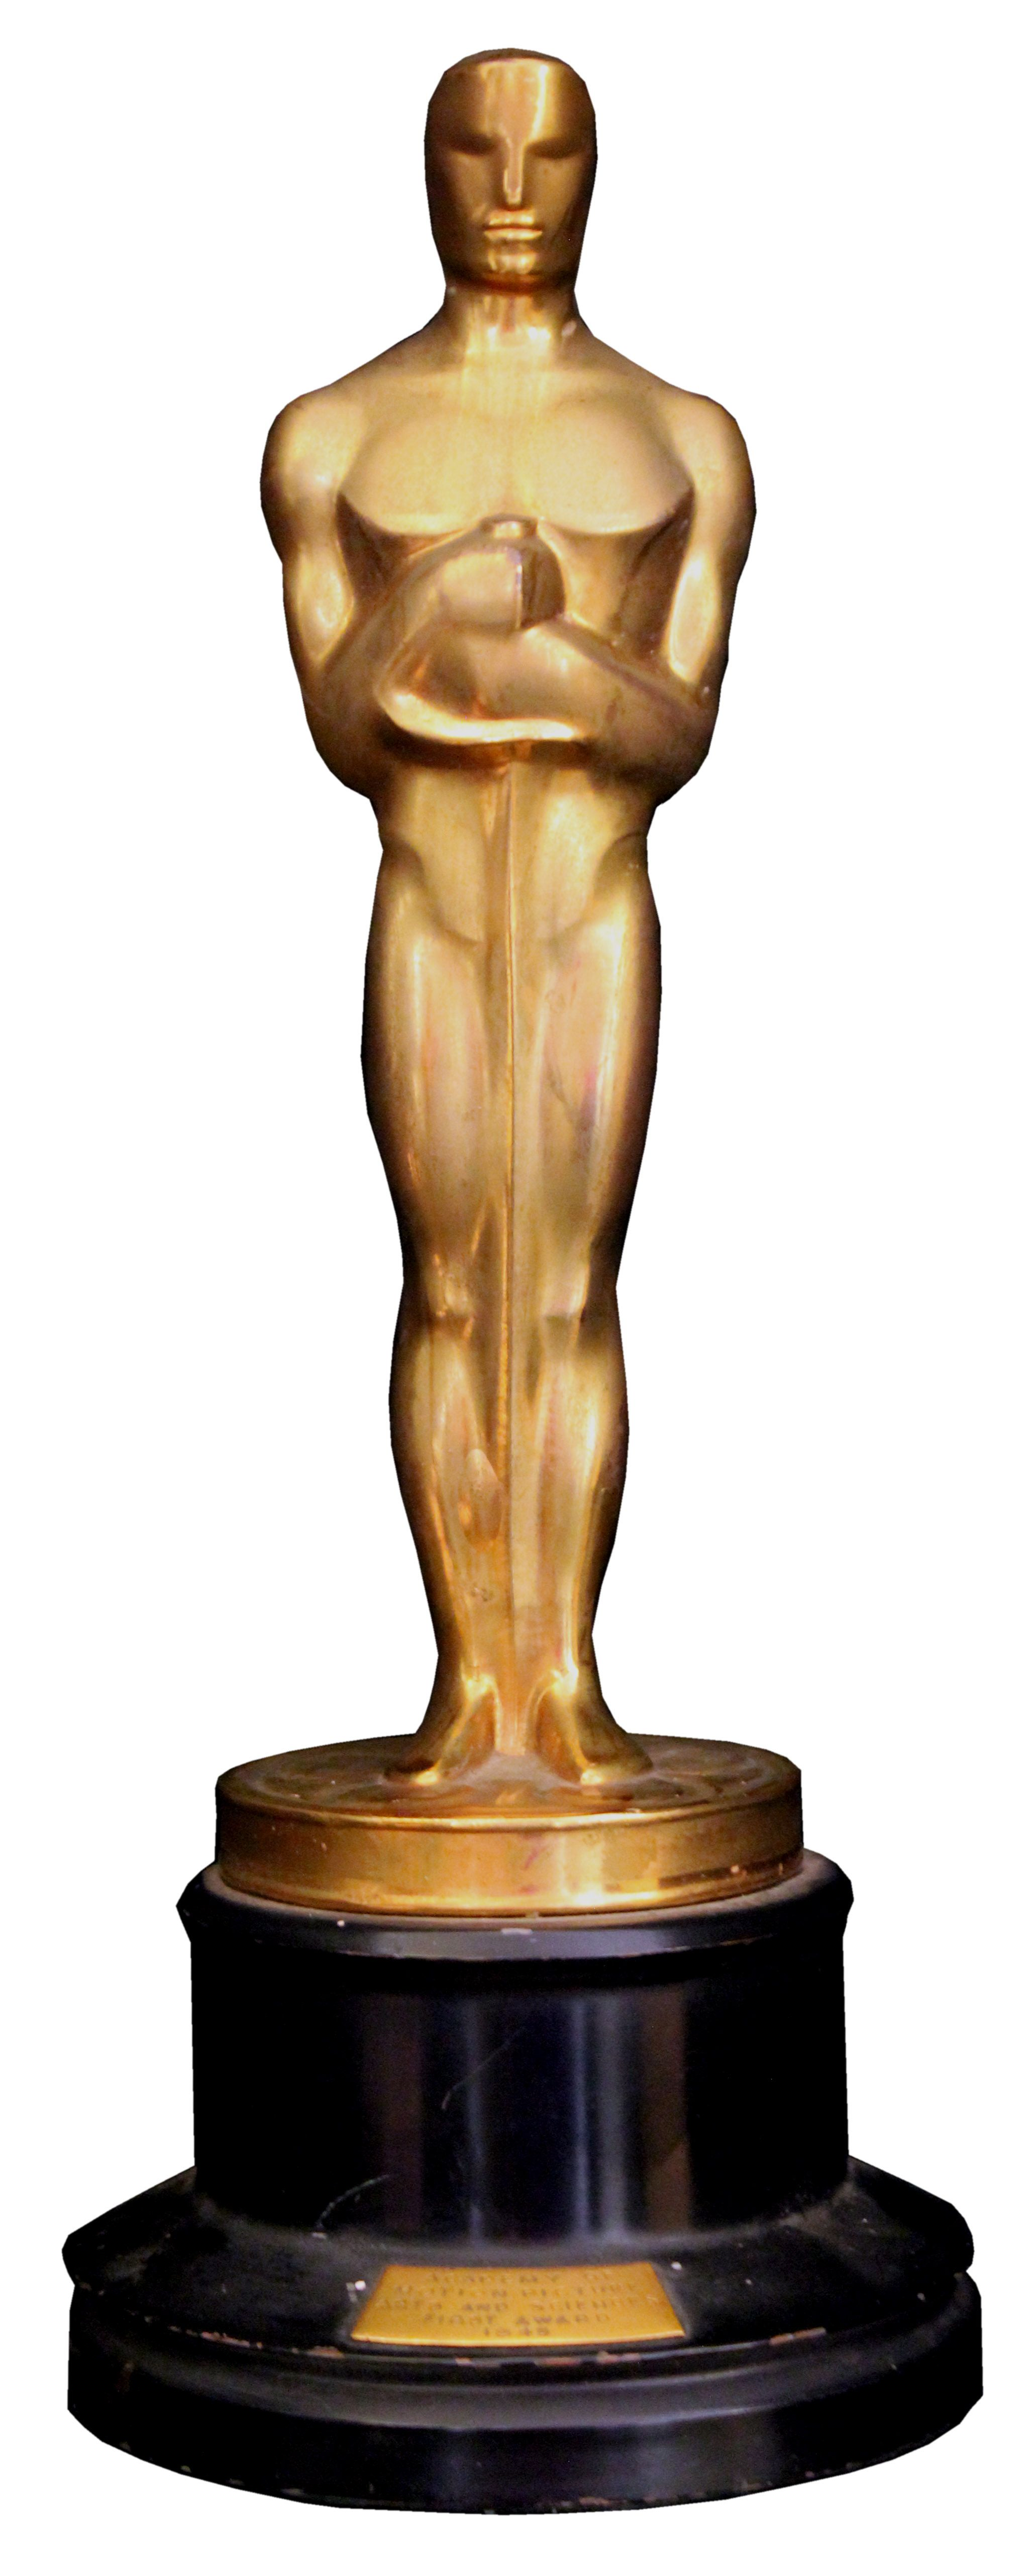 Free Oscar Statue Cliparts, Download Free Clip Art, Free.